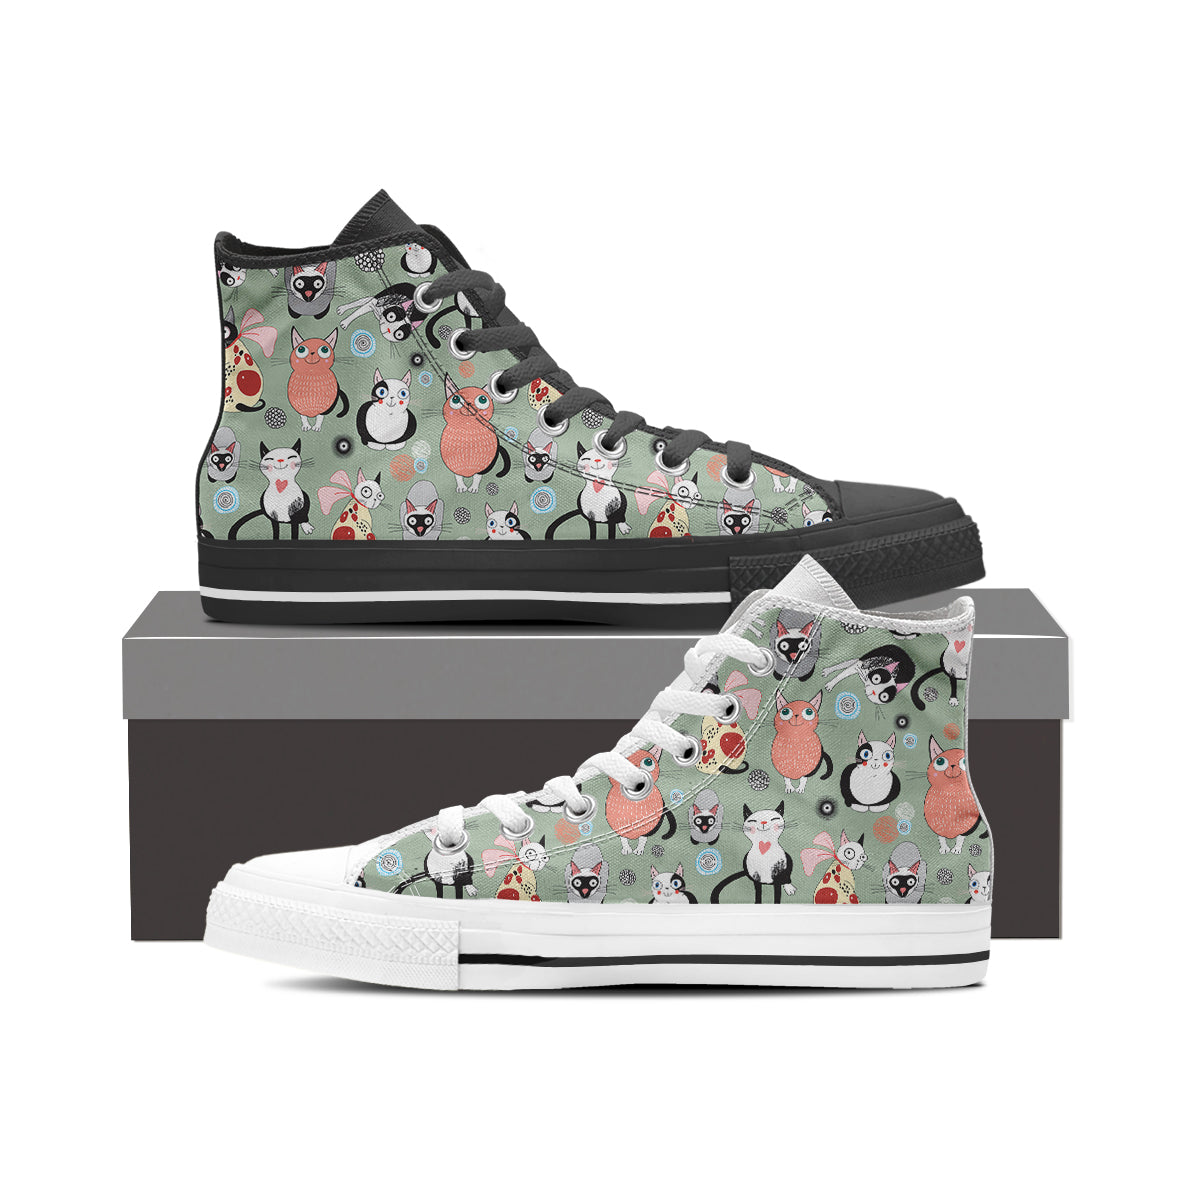 Snugly Cat High Tops (Women's) - Hello Moa